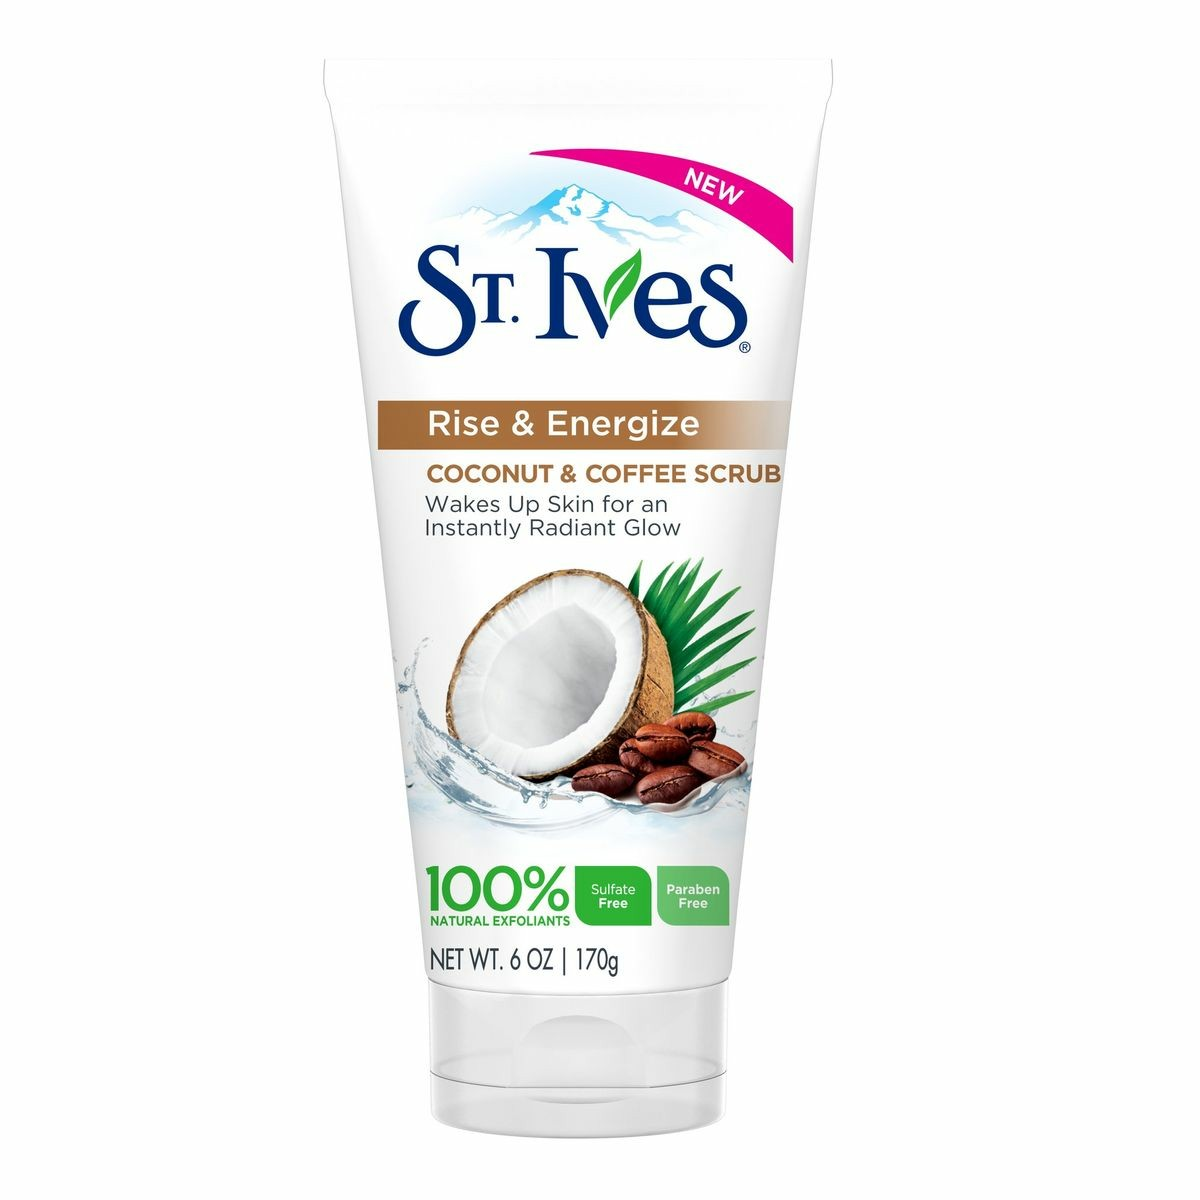 St. Ives Rise & Energize - Coconut & Coffee Scrub